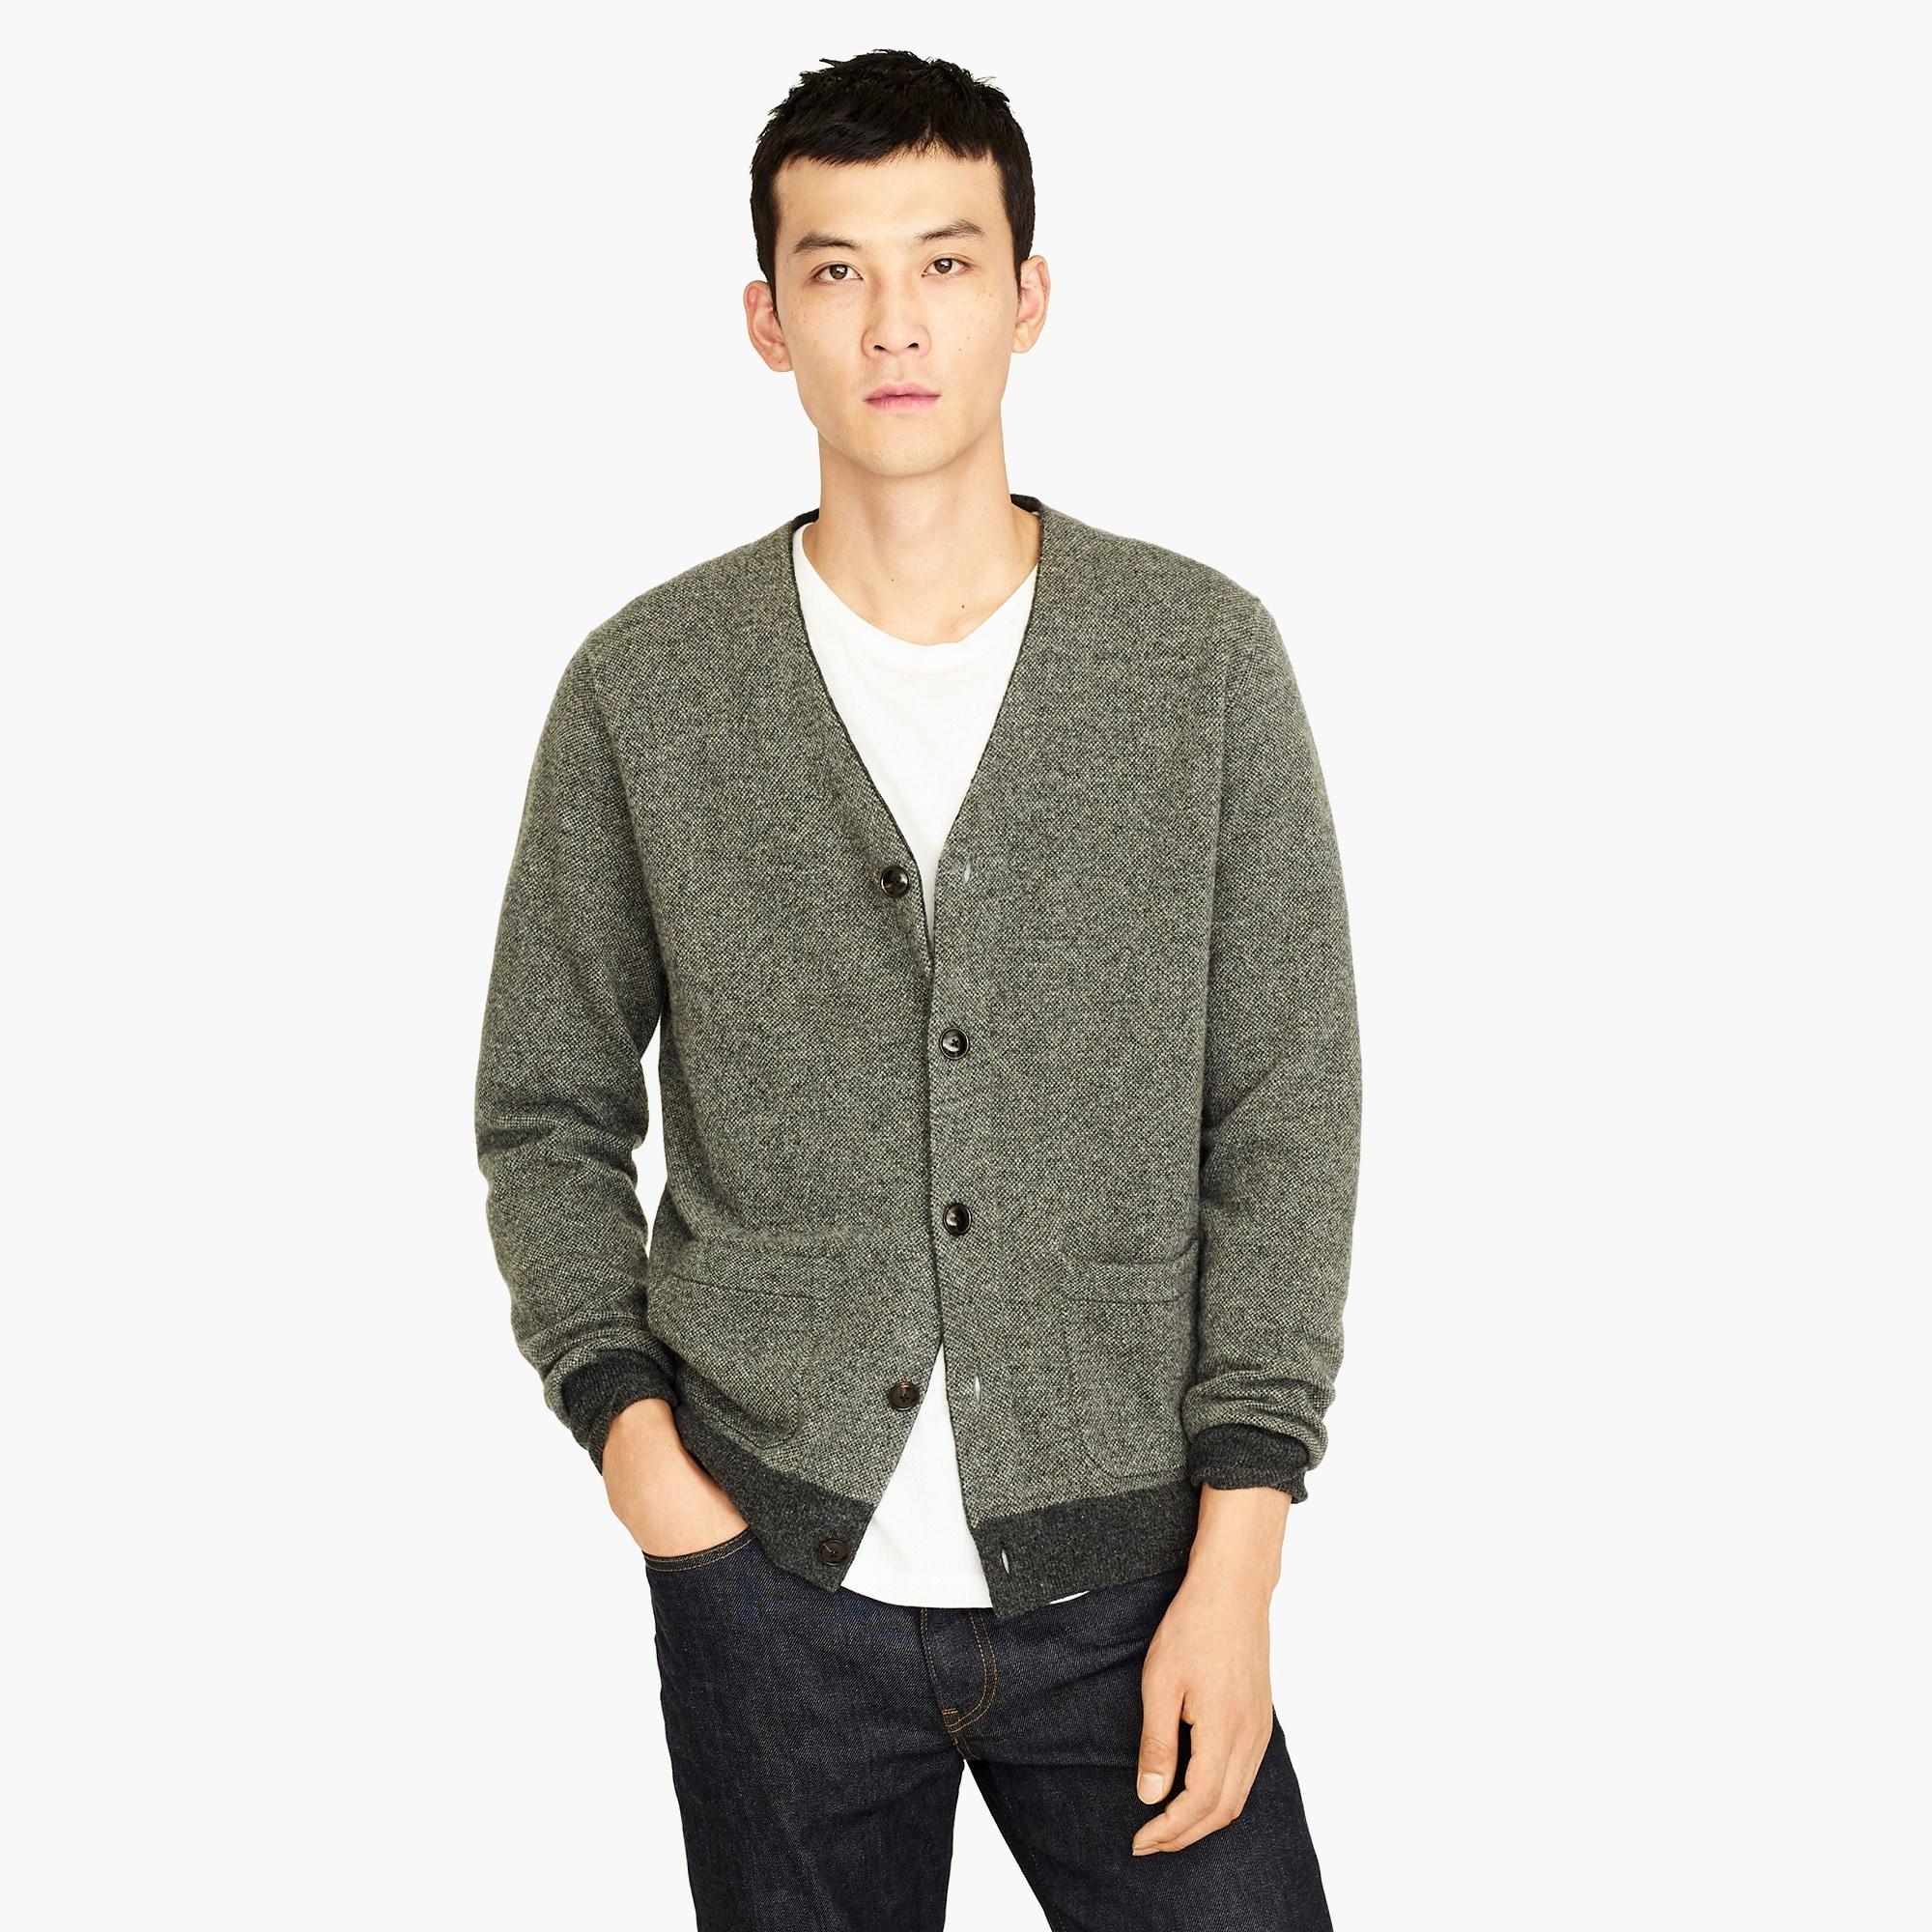 mens American lambswool bird's-eye cardigan sweater